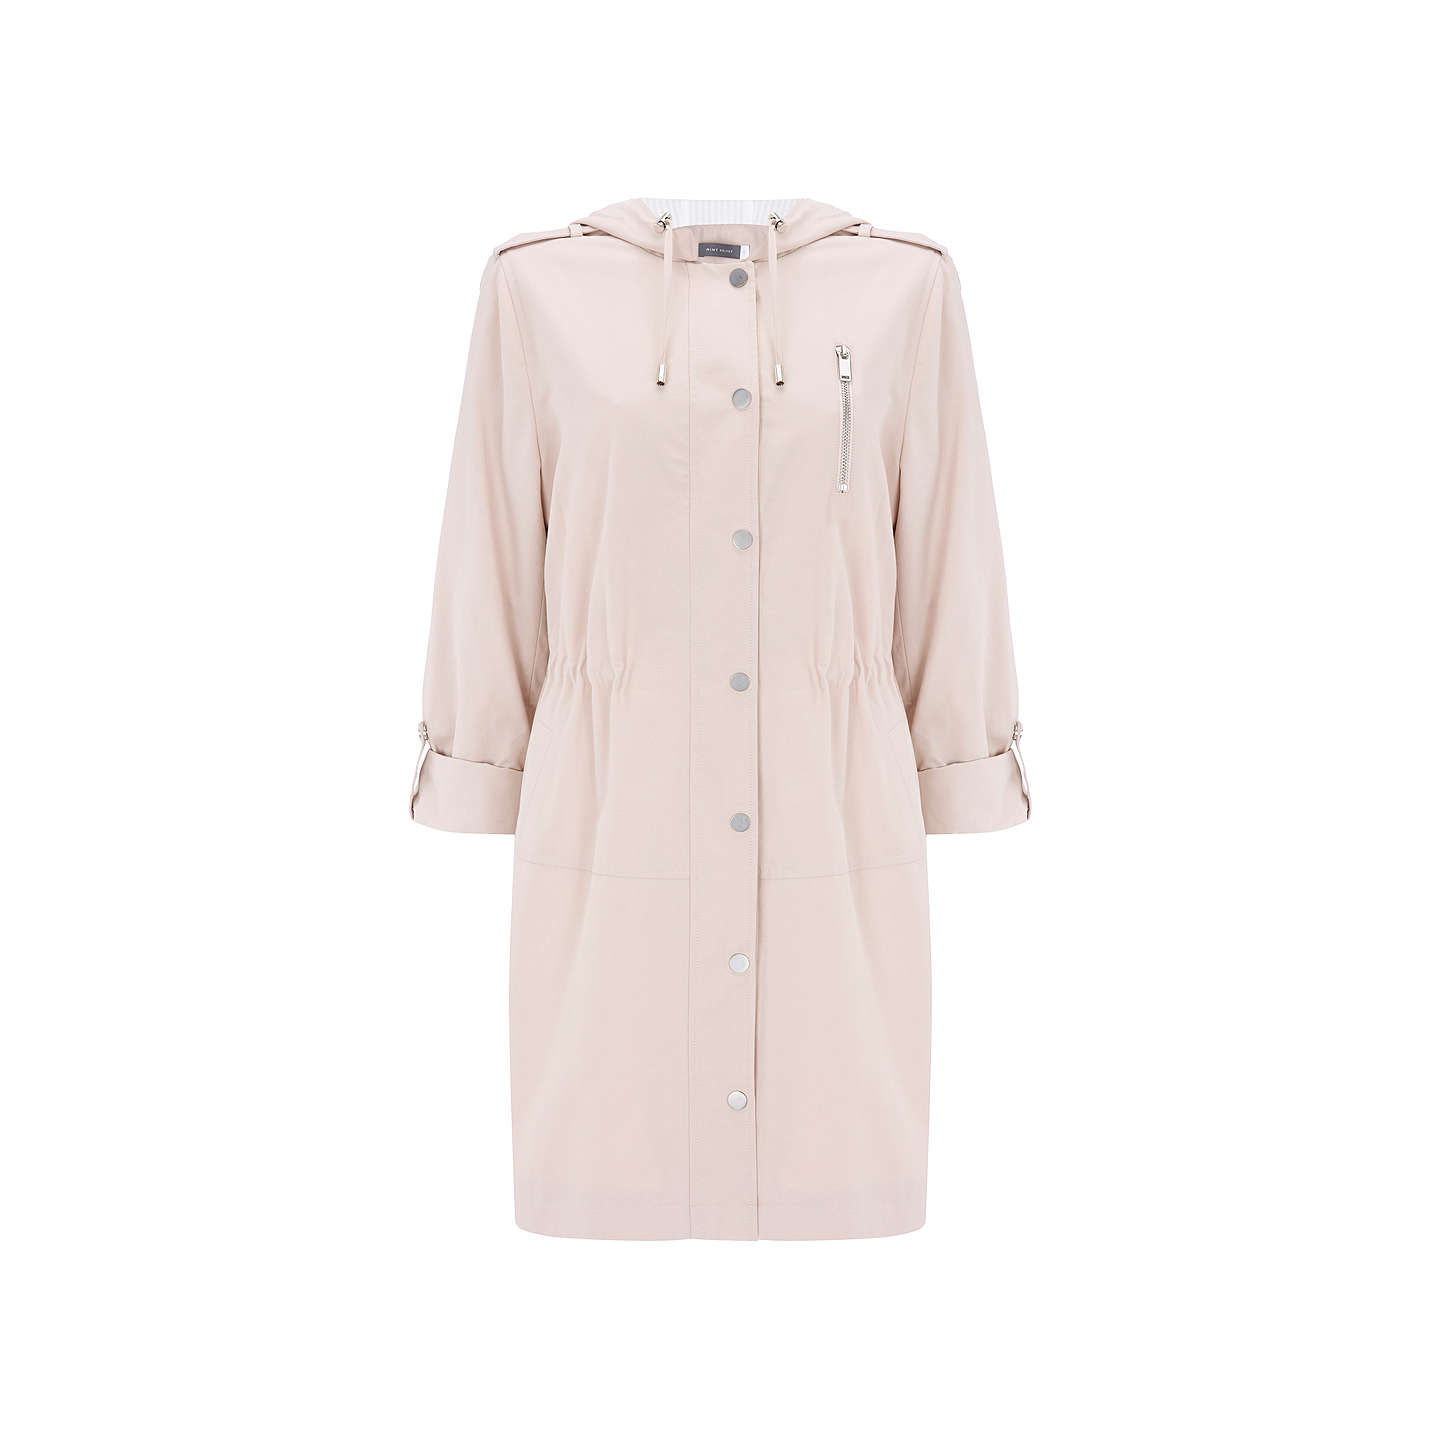 BuyMint Velvet Blossom Stripe Lined Parka, Light Pink, 6 Online at johnlewis.com